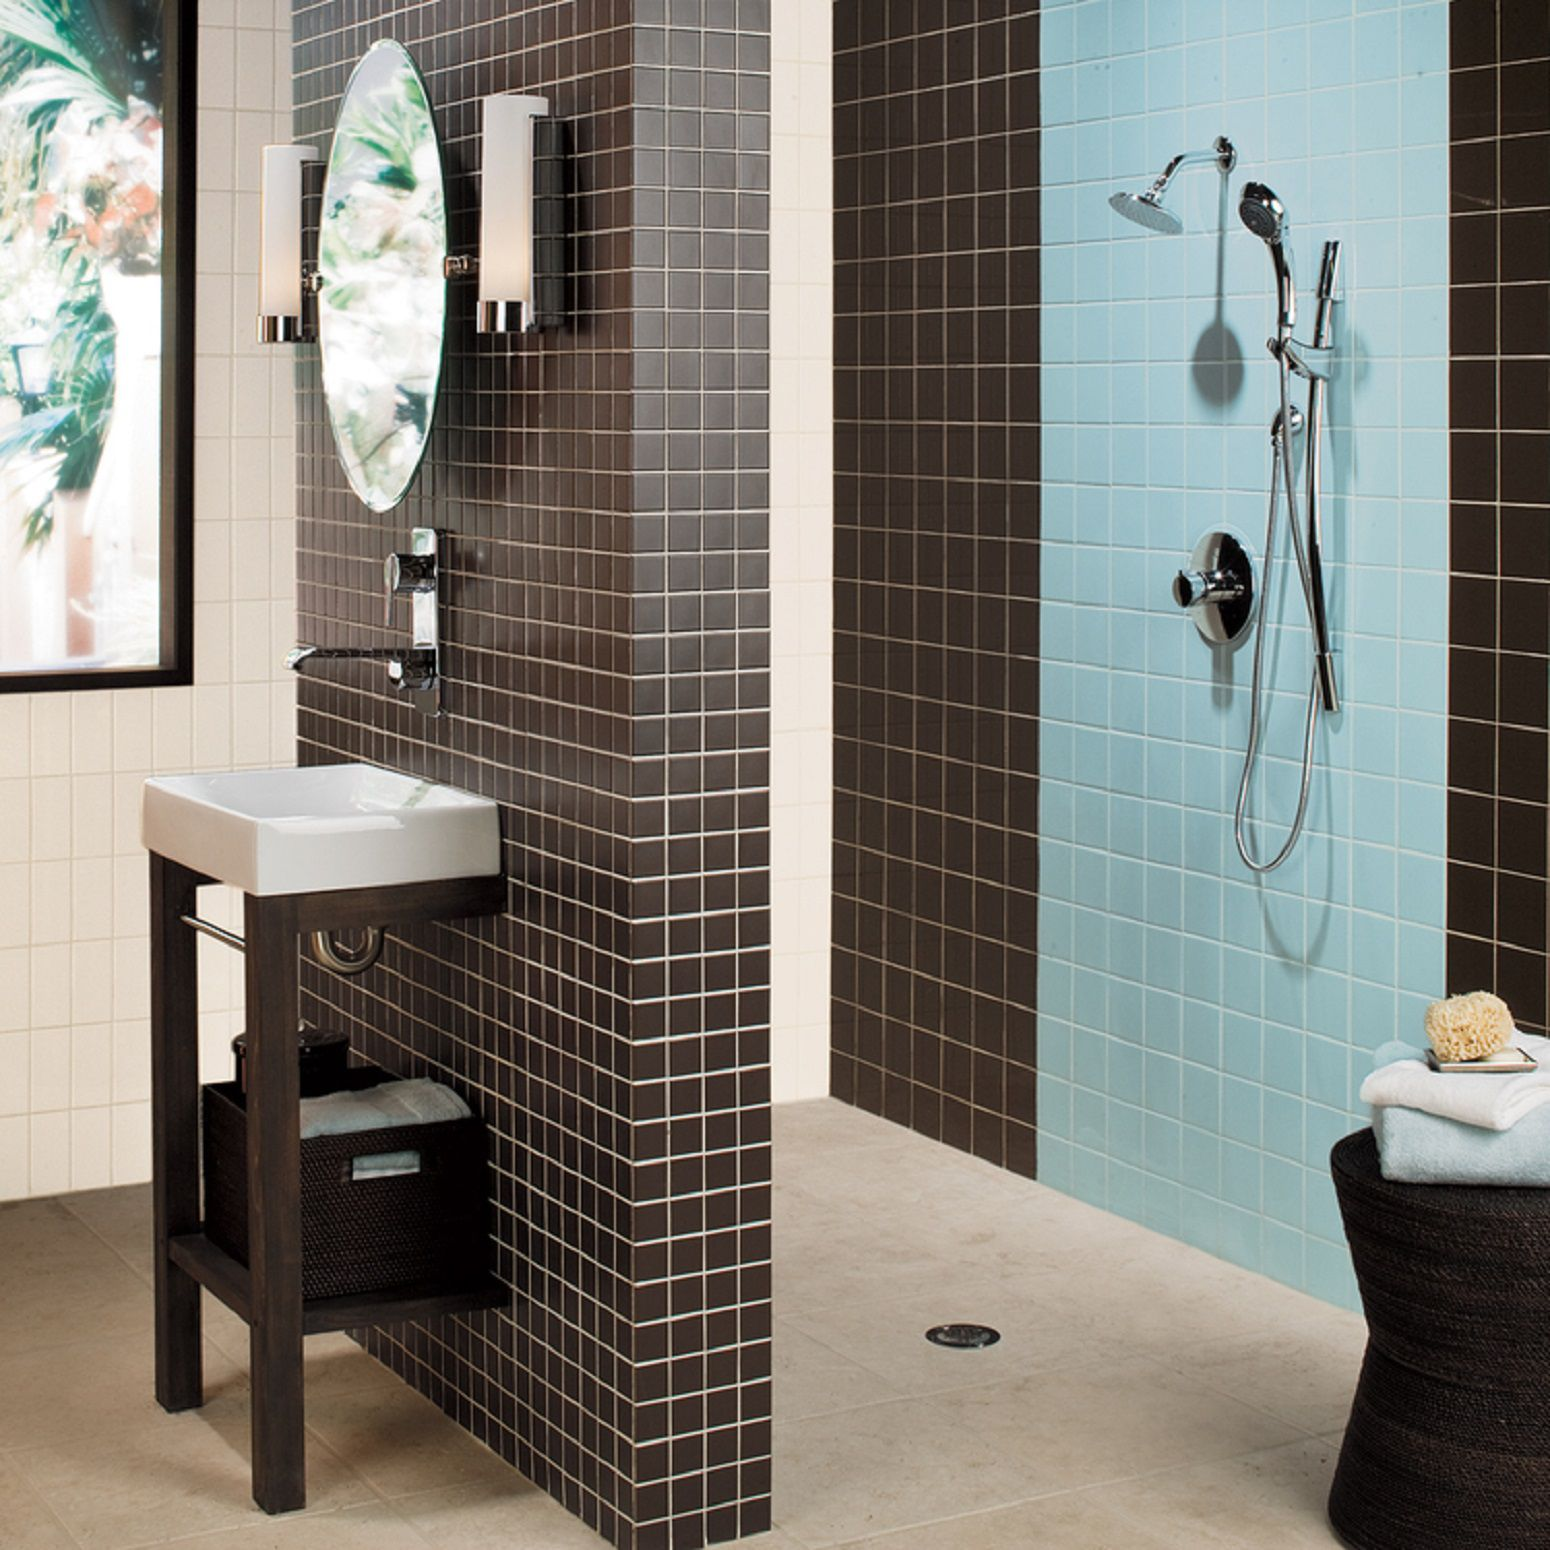 30 bathroom tile ideas for a fresh new look - Bathroom Tile Ideas Design